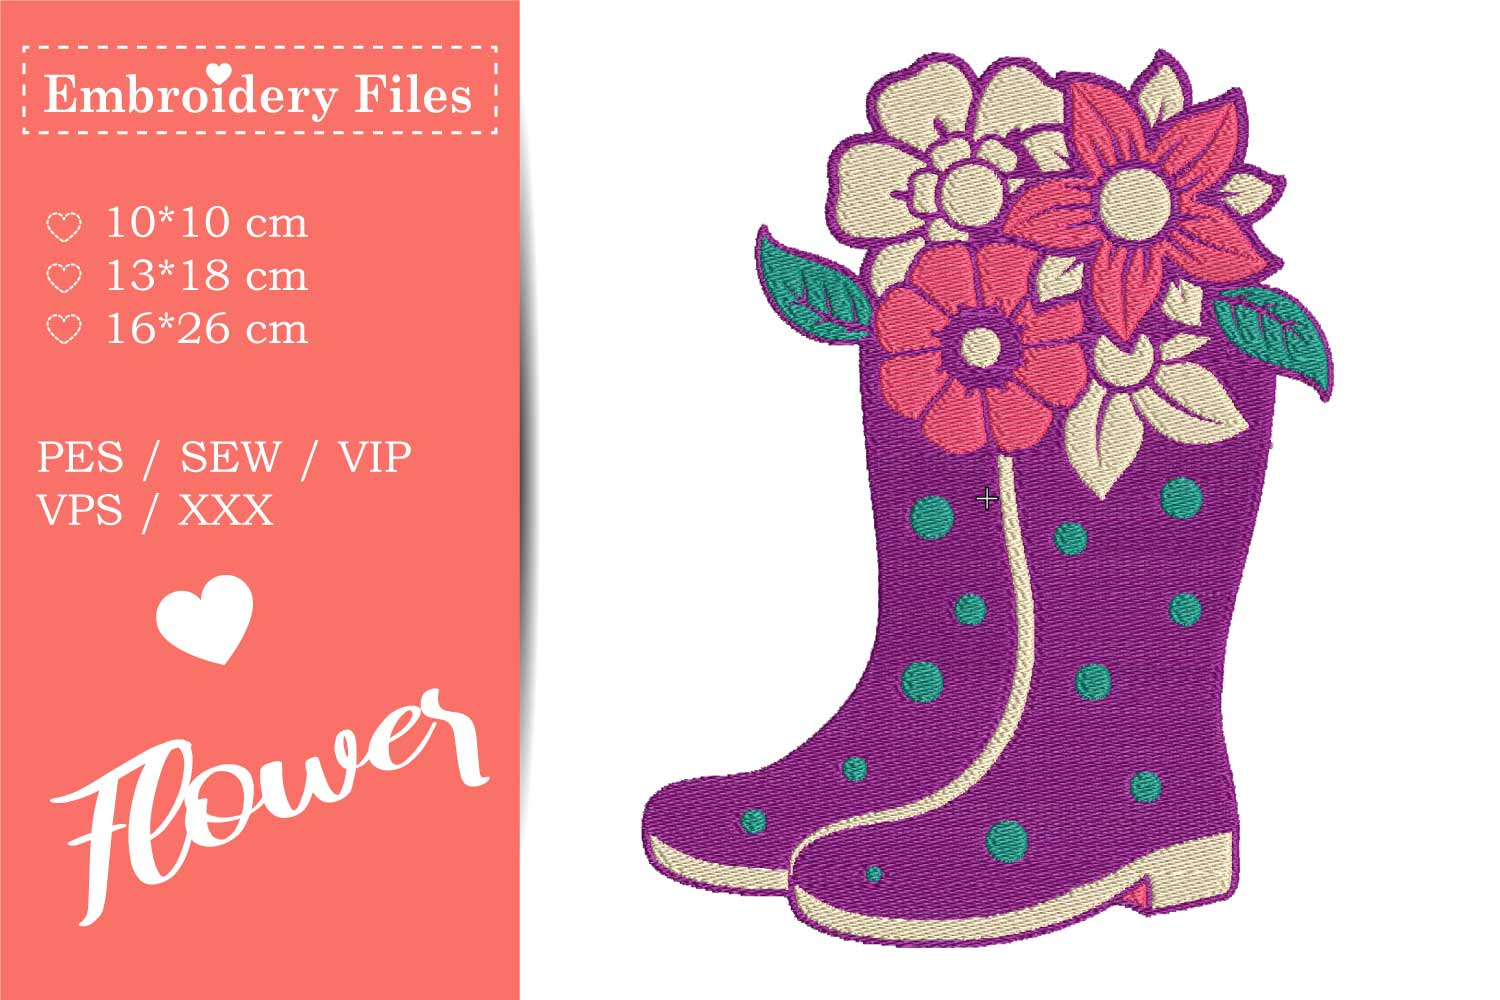 Rubber Boots with Flowers - Embroidery File example image 2